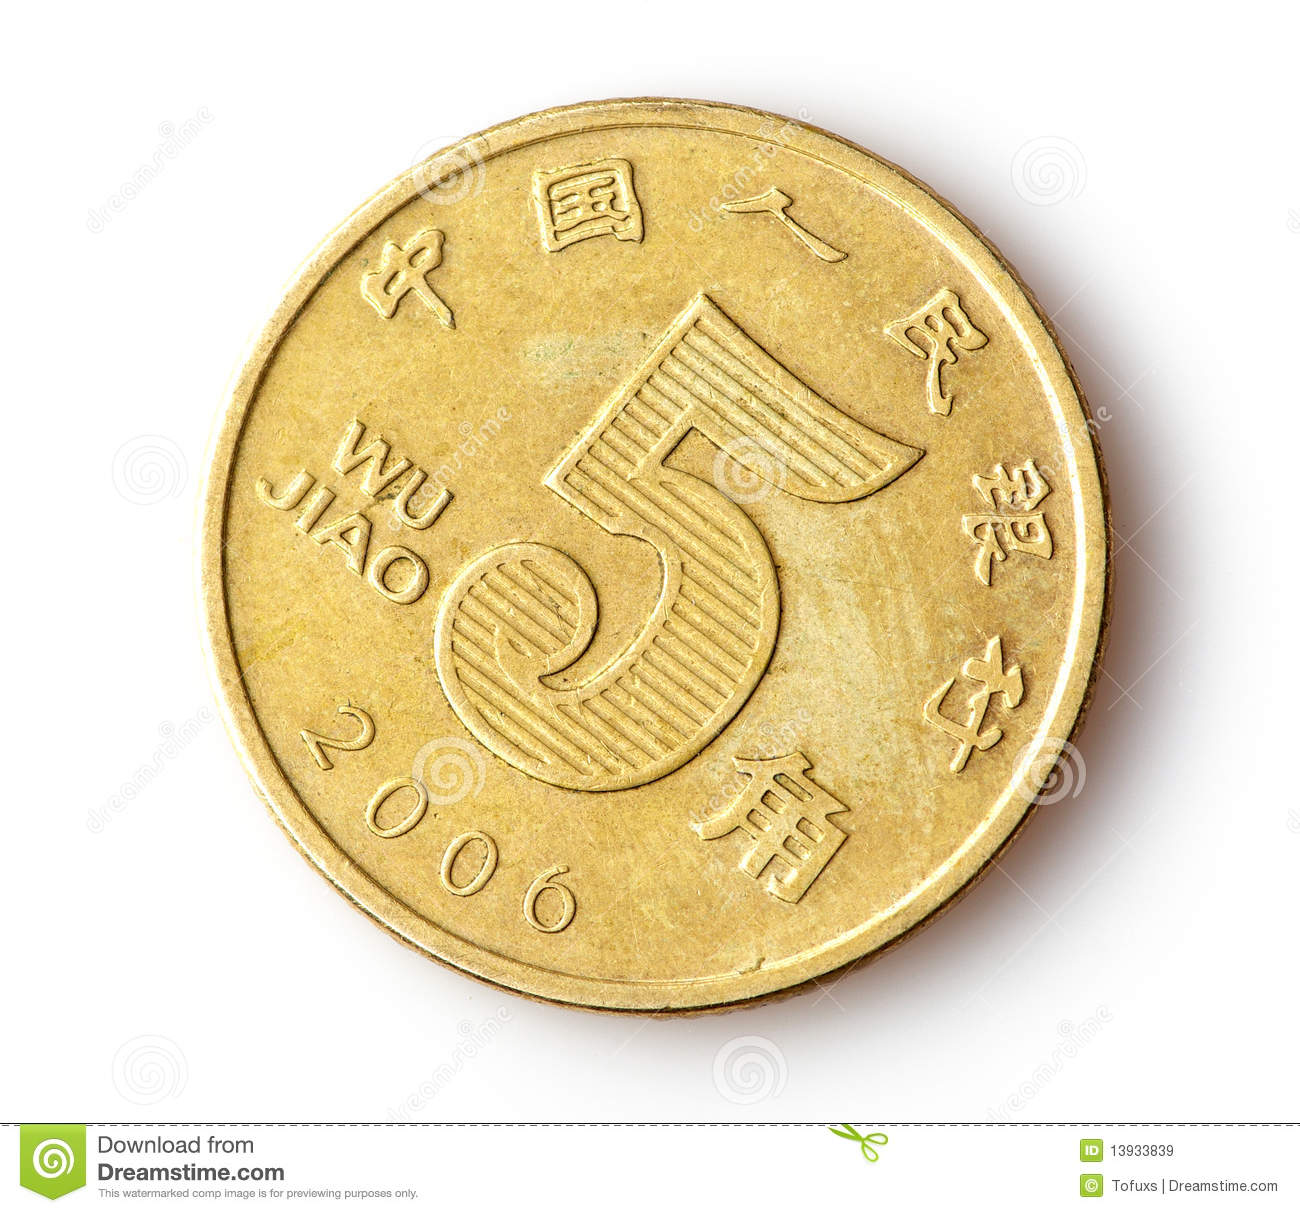 RMB Coins Royalty Free Stock Images - Image: 13933839